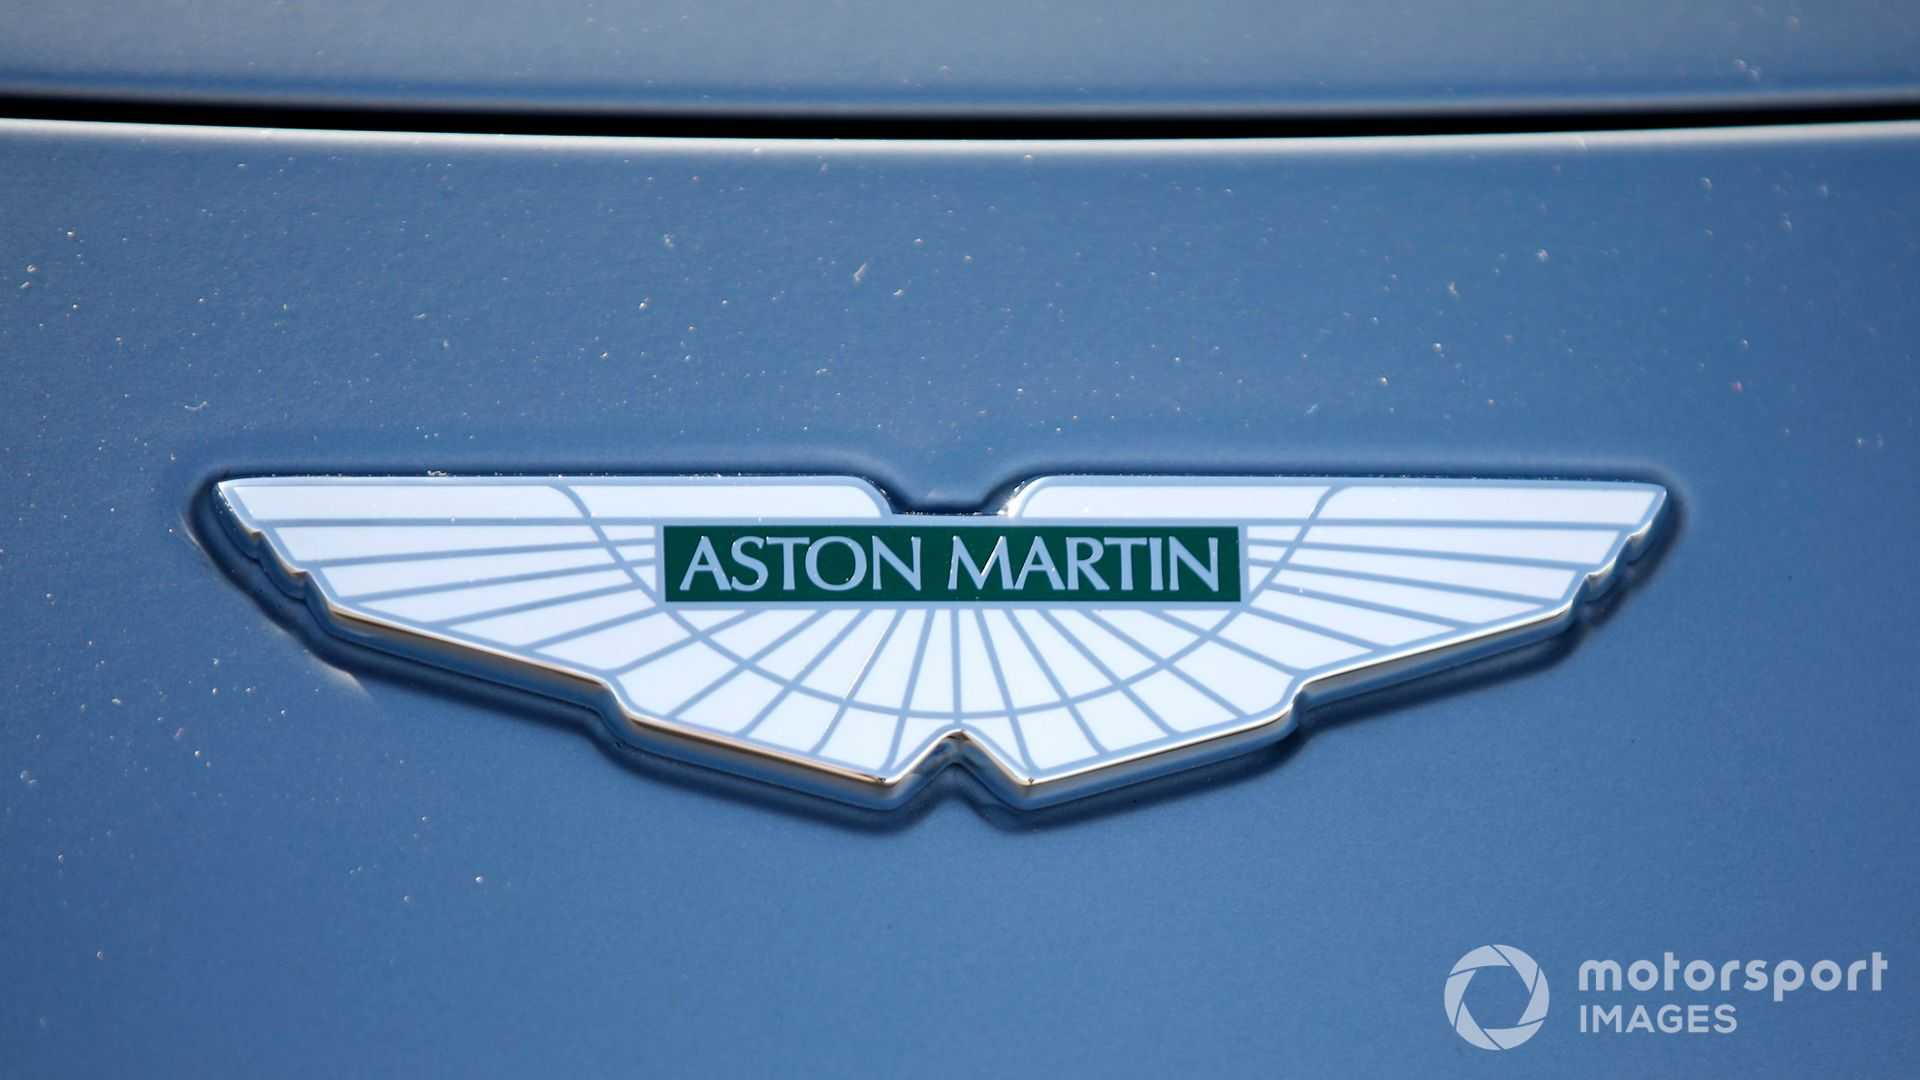 Aston Martin set to adopt British racing green colours in F1